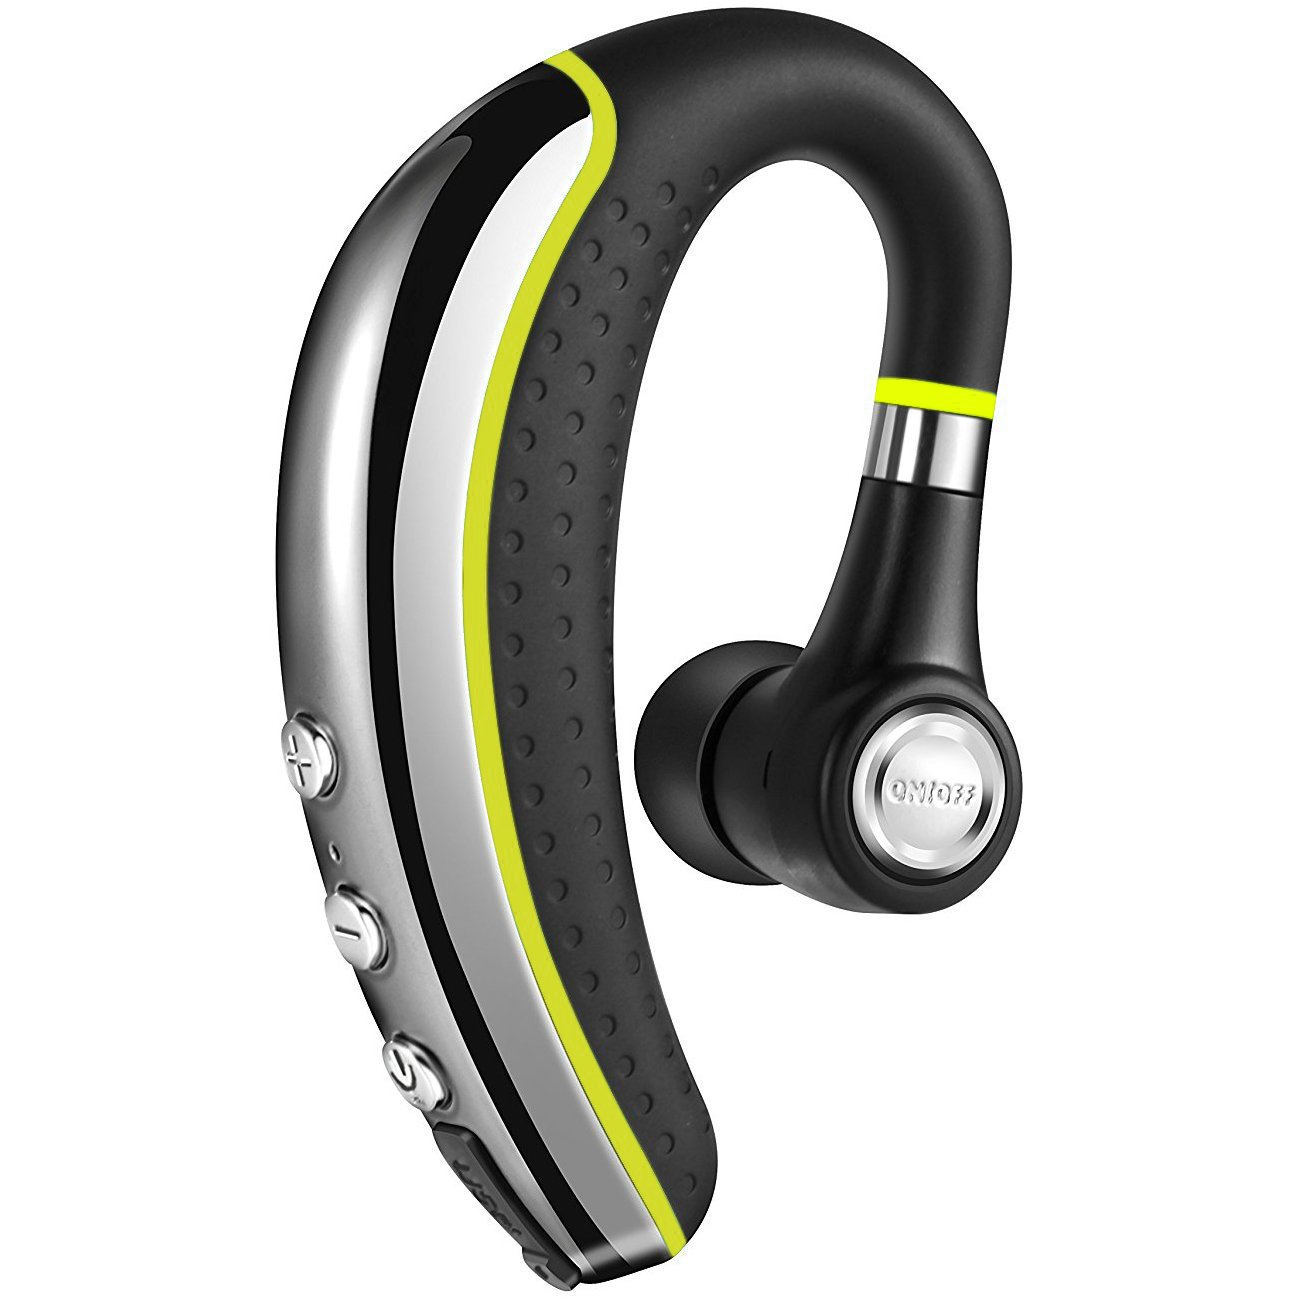 【NEW】Bluetooth Headset V4.1,Candeo Wireless Business Earpiece Trucker In-Ear Earbuds Headphones with Noise Reduction Mute Switch,Hands Free w/Mic for Office/Business/Workout/Driver/Trucker-Yellow